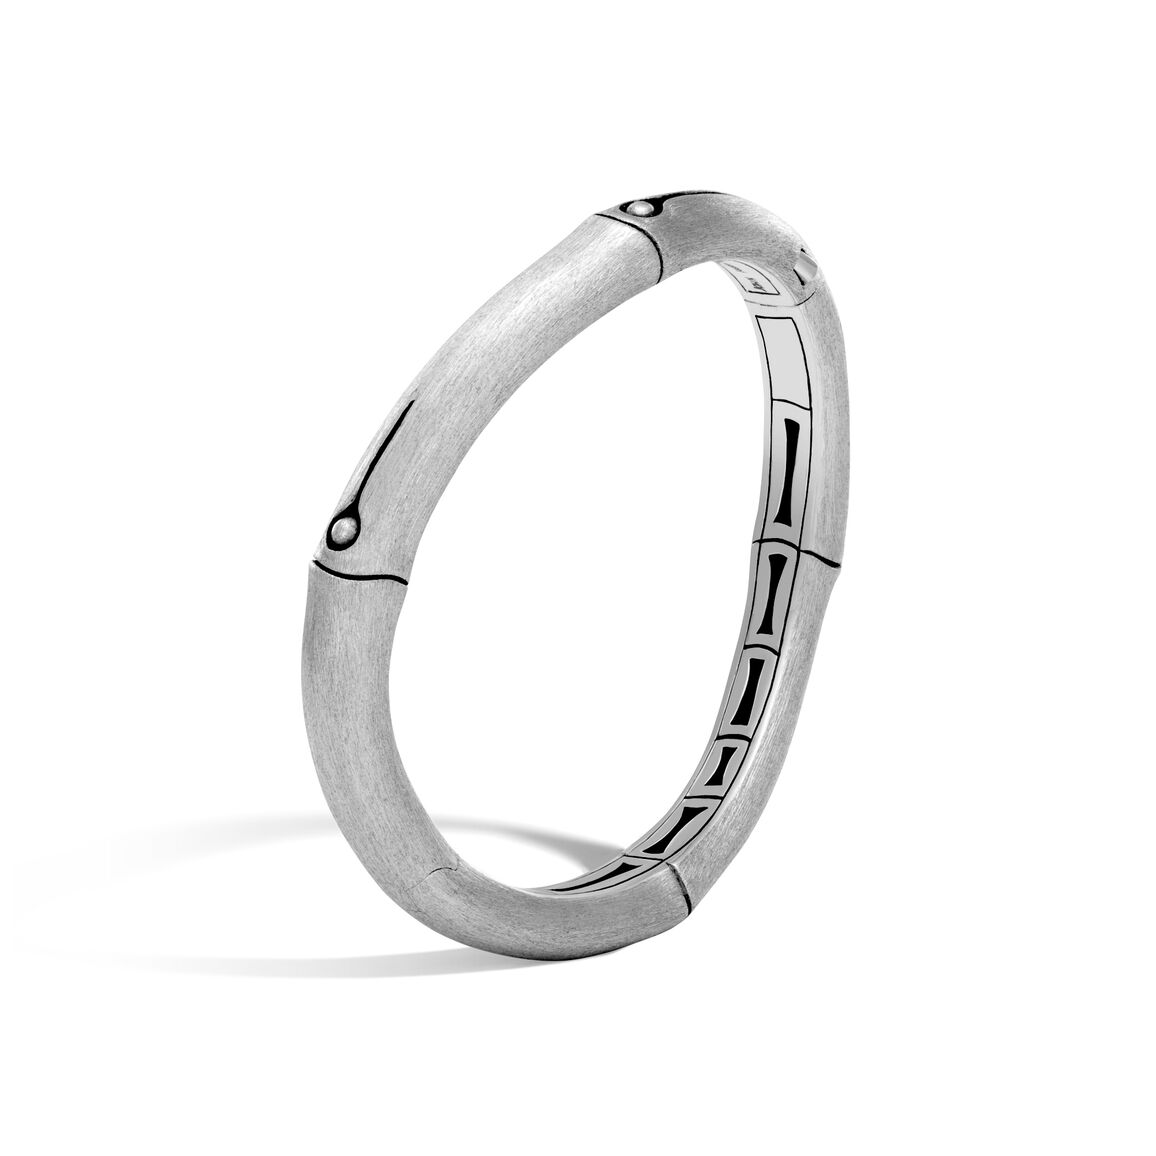 Bamboo 9MM Curved Hinged Bangle in Brushed Silver